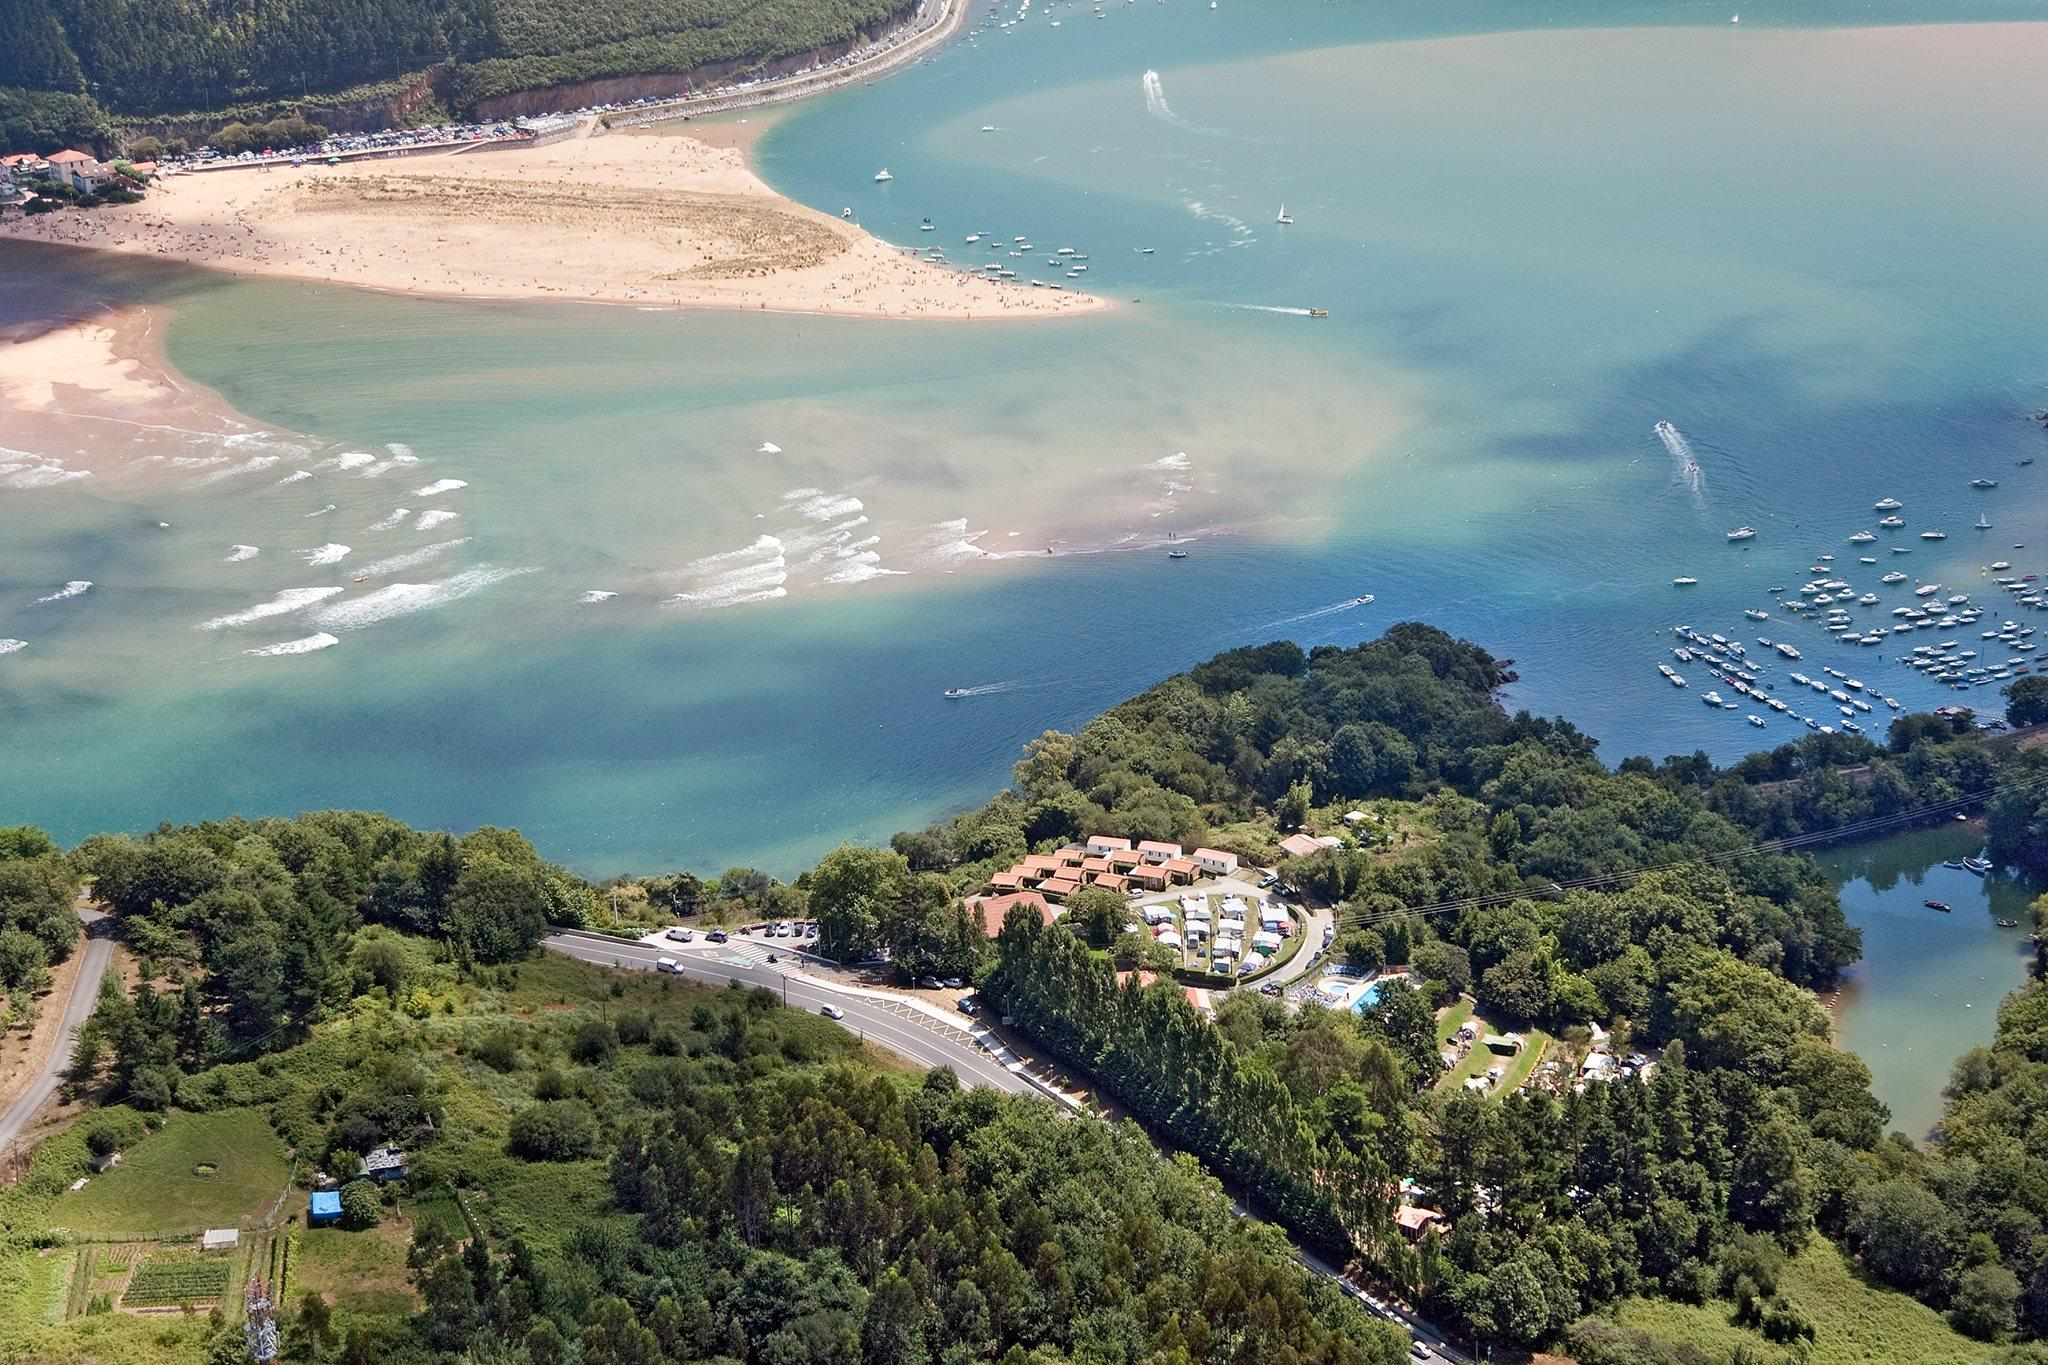 Establishment Camping Portuondo - Mundaka